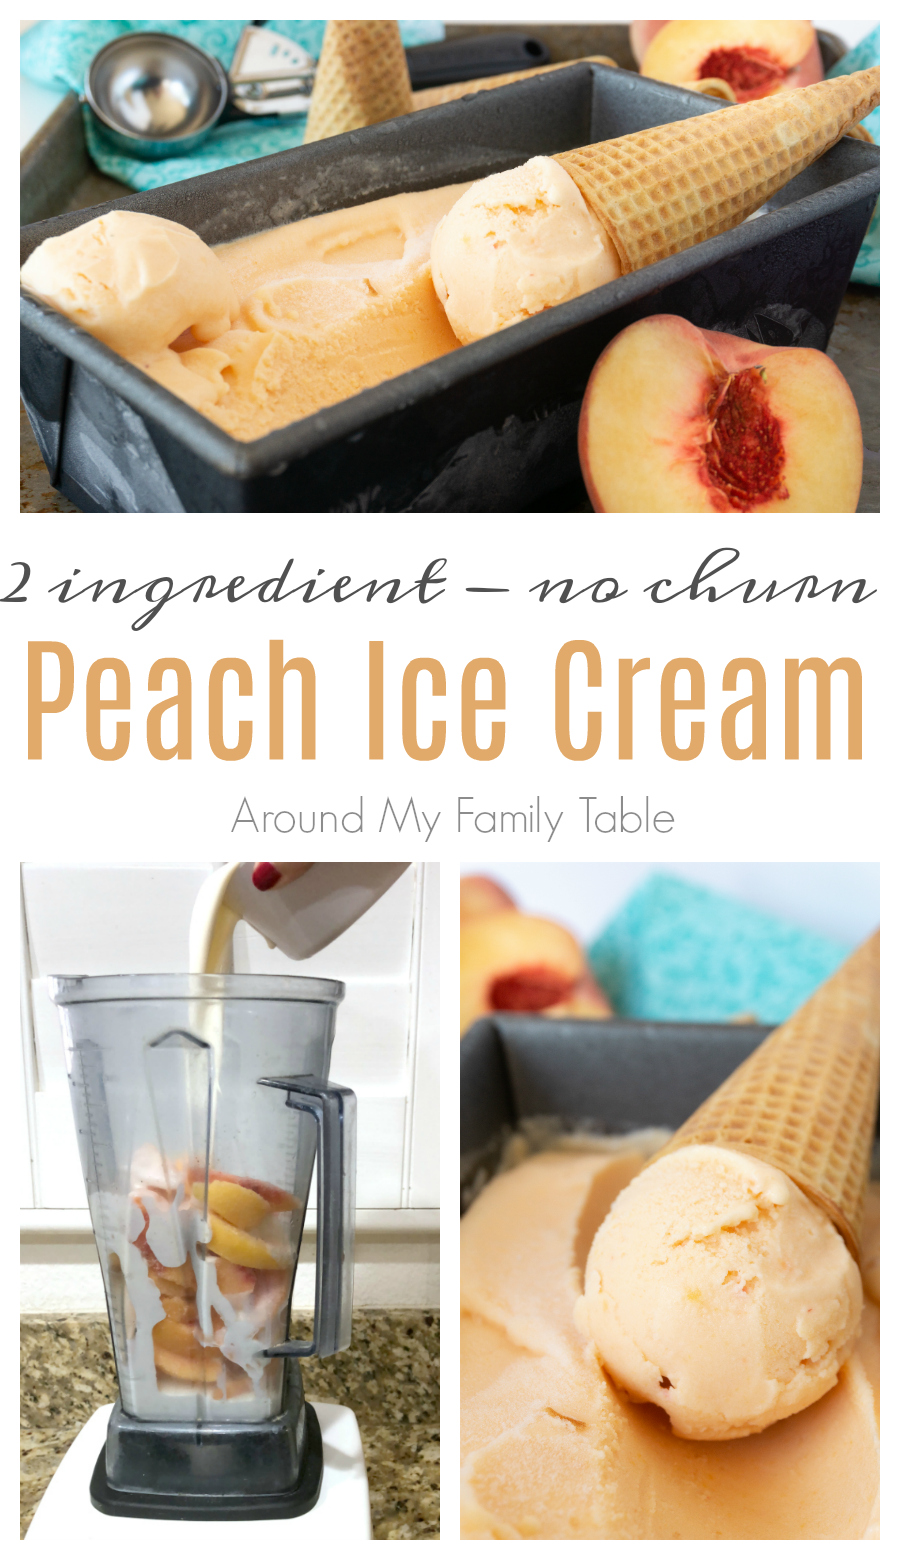 Grab an ice cream cone because this 2-ingredient, no churn peach ice cream is the easiest and The Best Peach Ice Cream Ever! via @slingmama